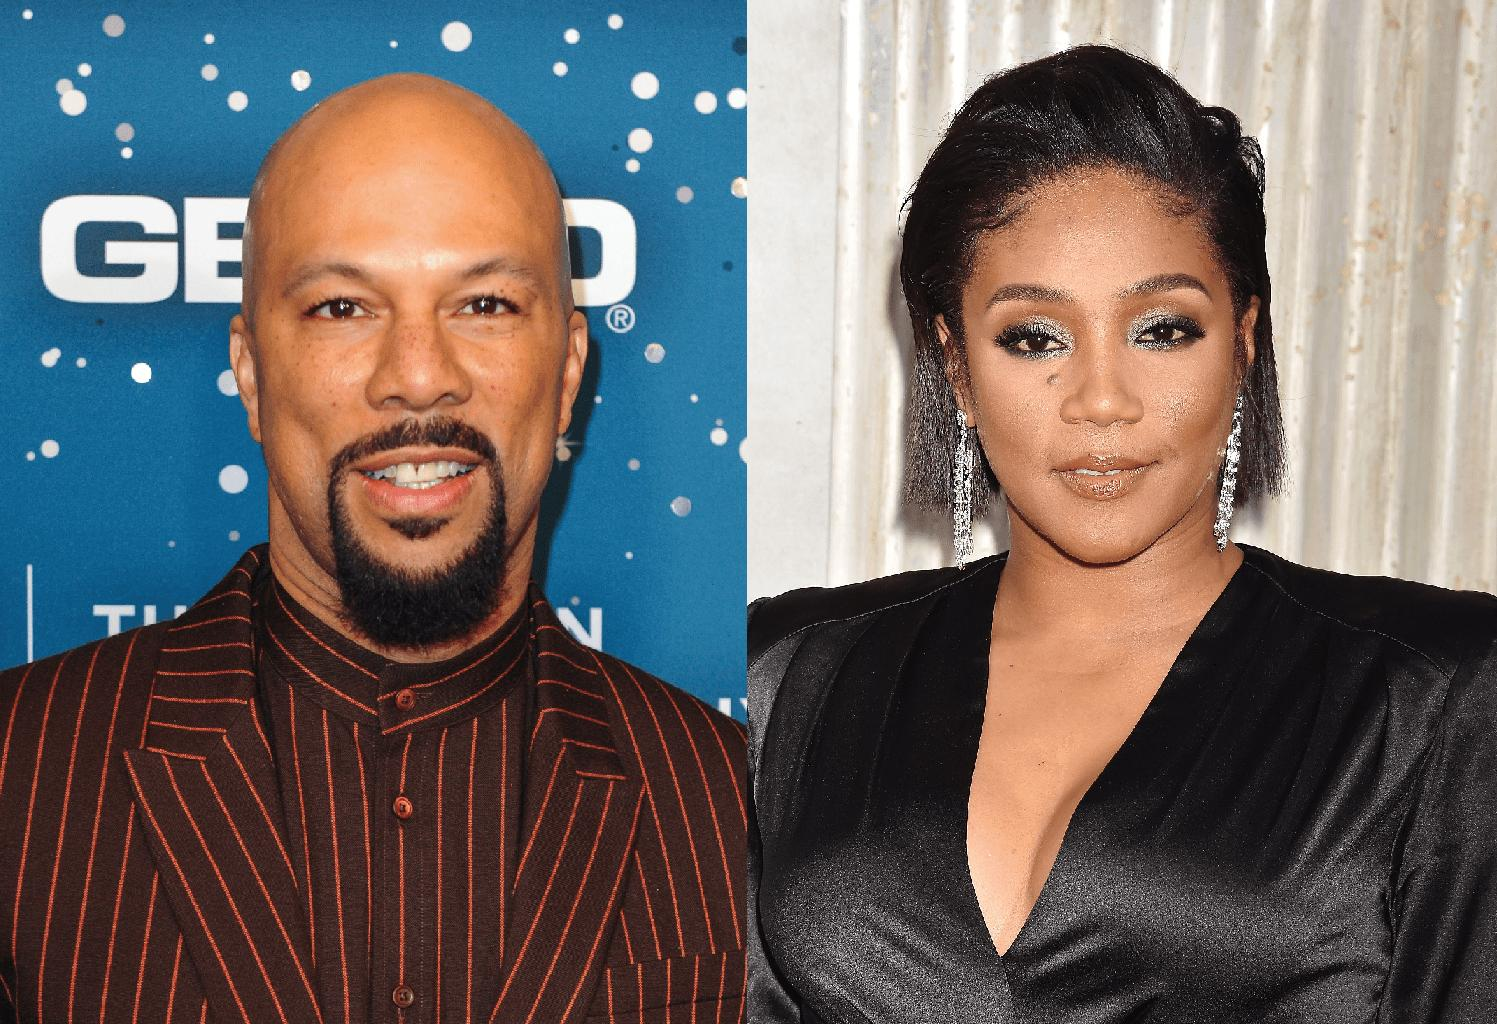 Wendy Williams Thinks Common And Tiffany Haddish Would Make A Great Couple - Urges Him To Date Her Since Tiffany Said He's 'Delicious!'